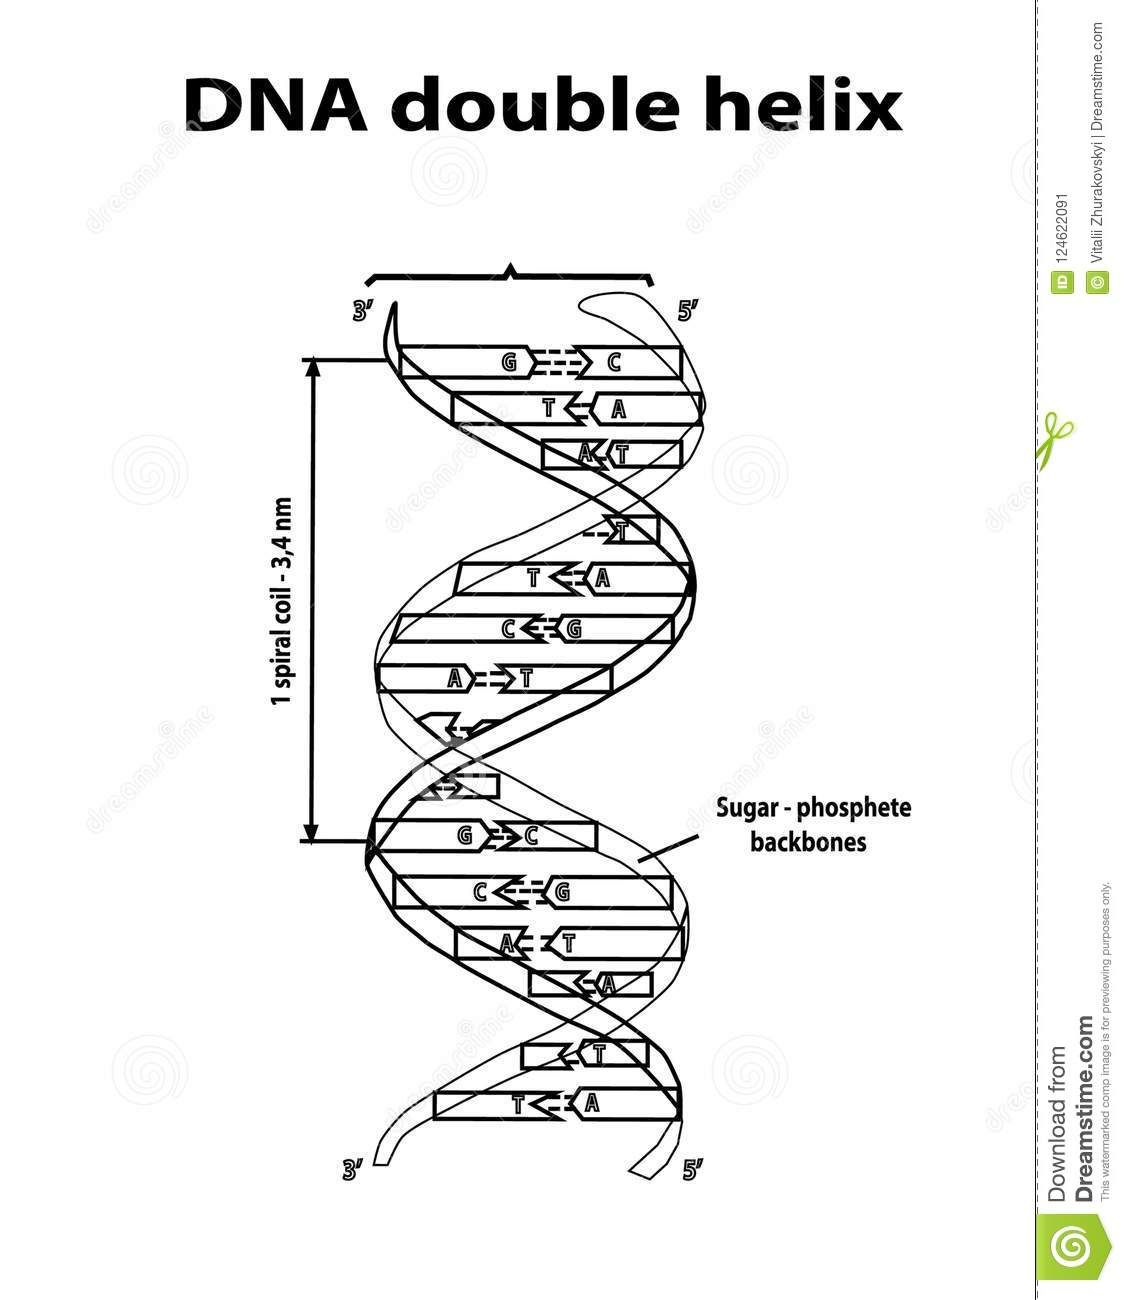 Image Result For Dna Bases